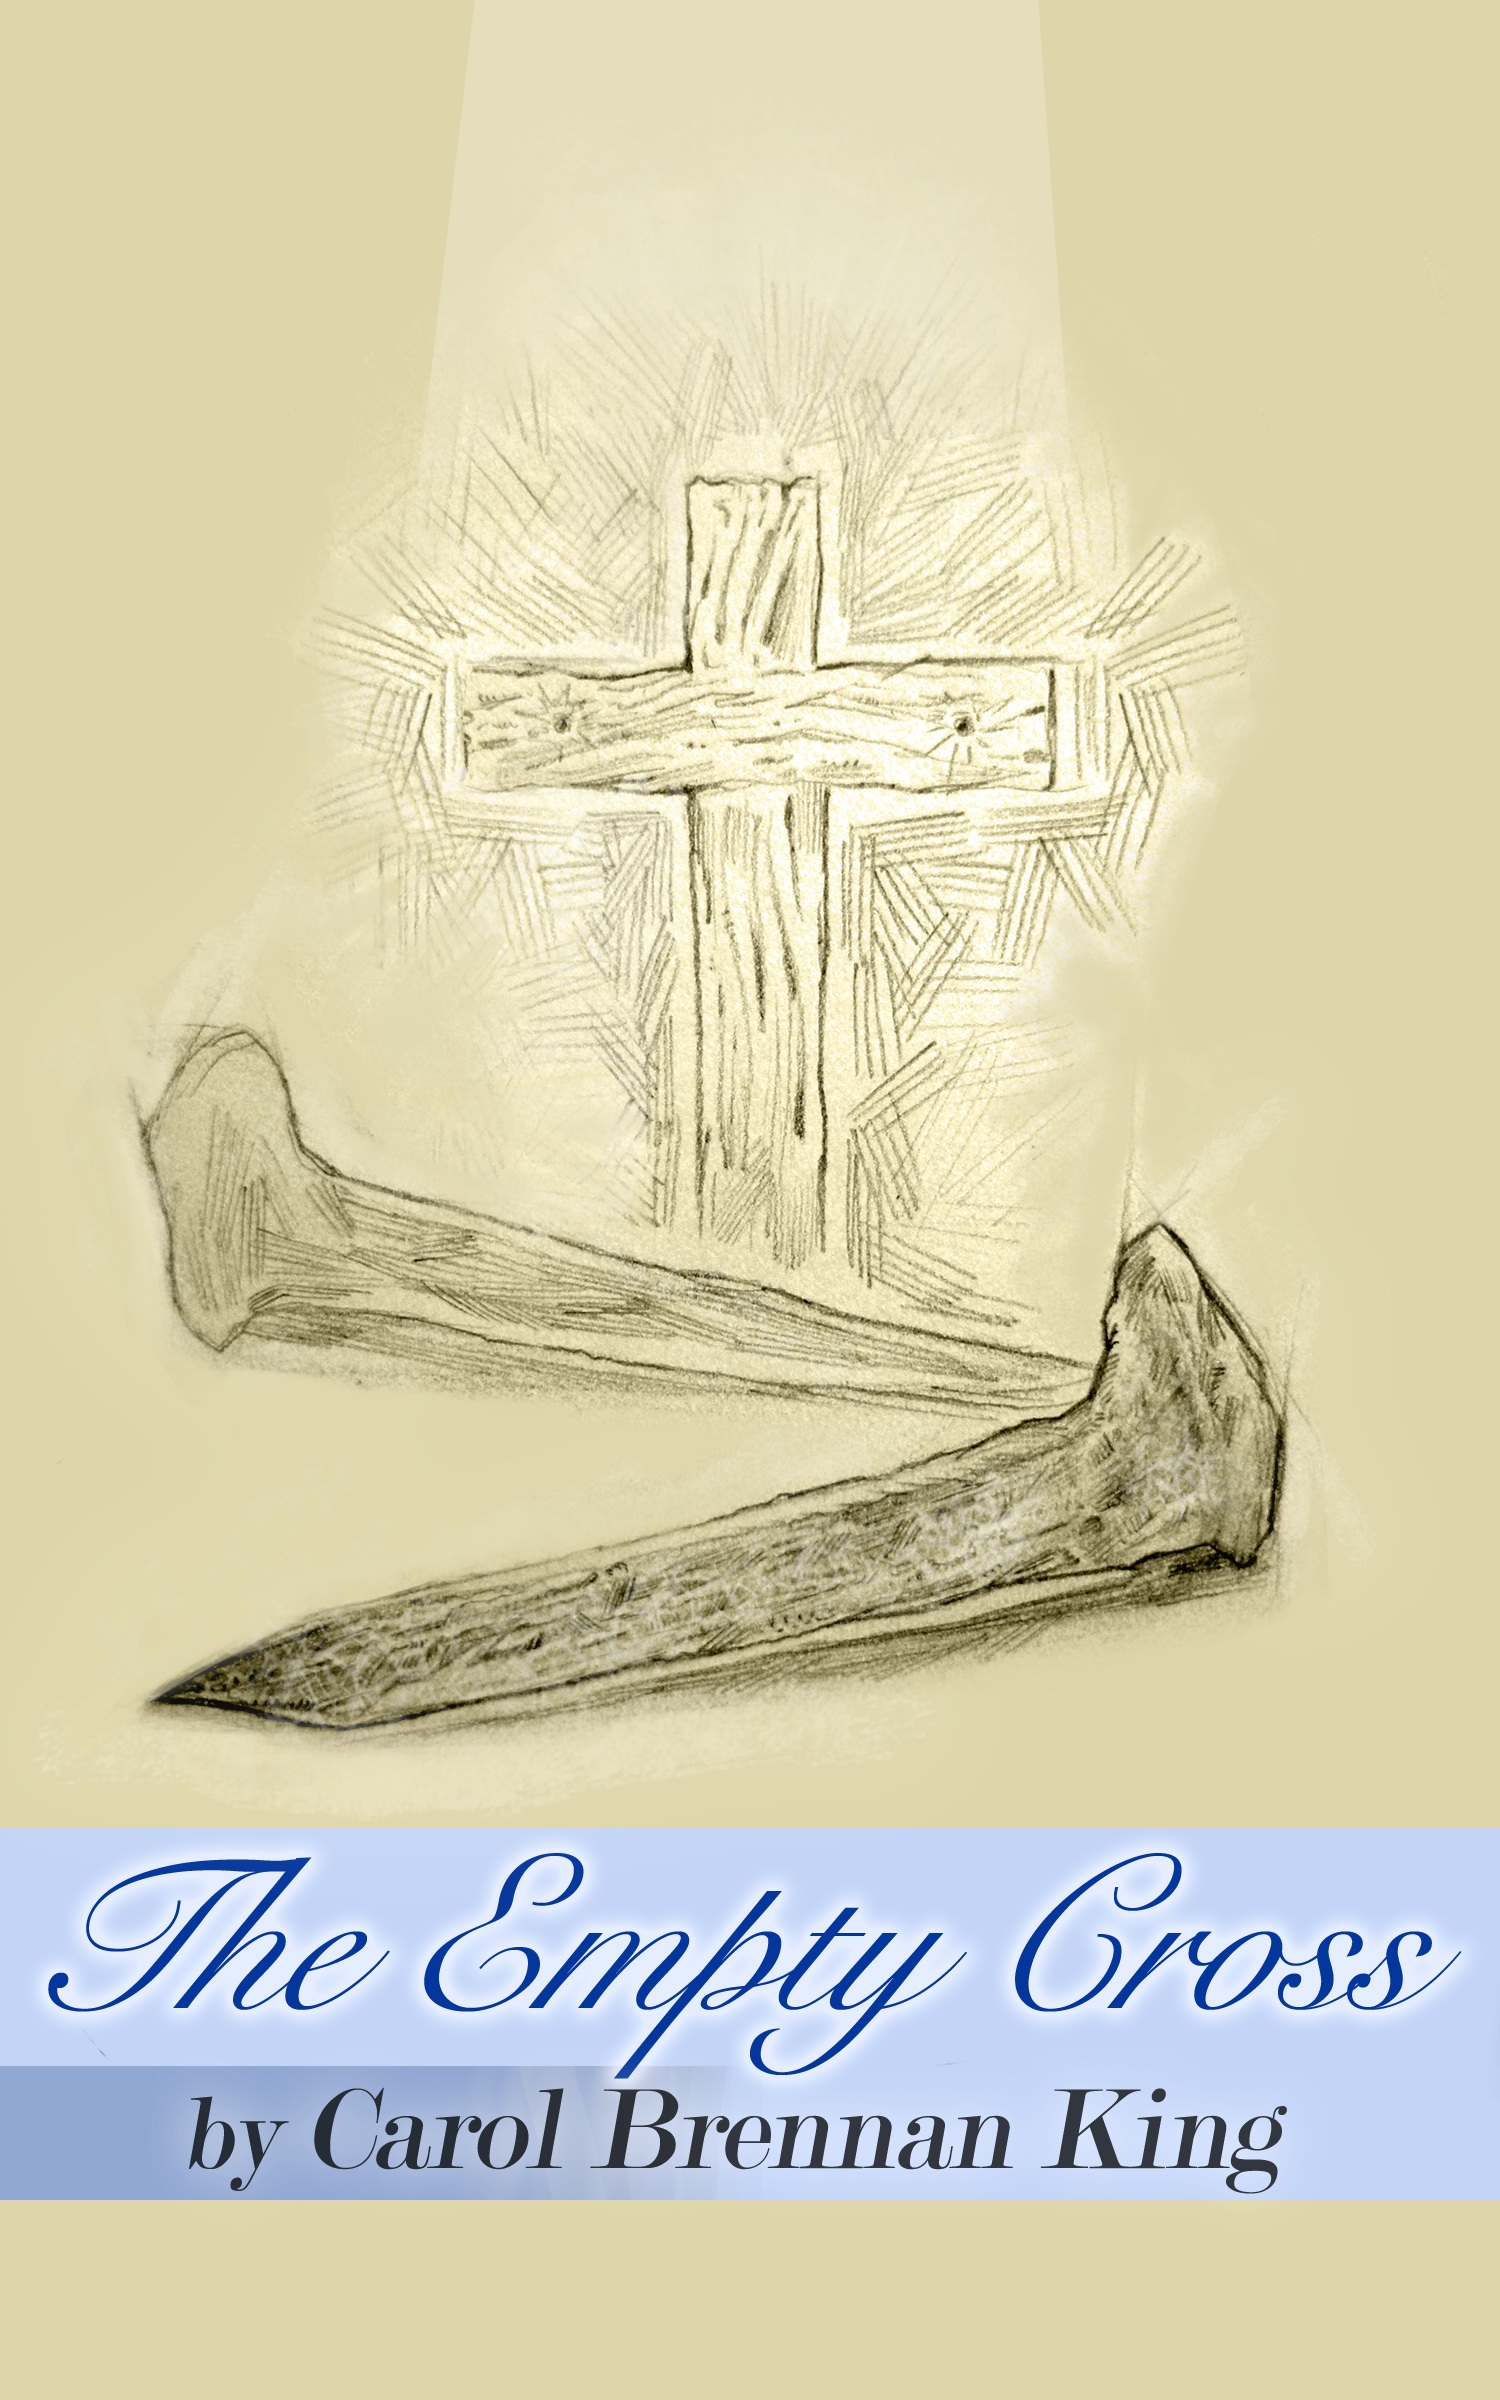 the empty cross-2 cover